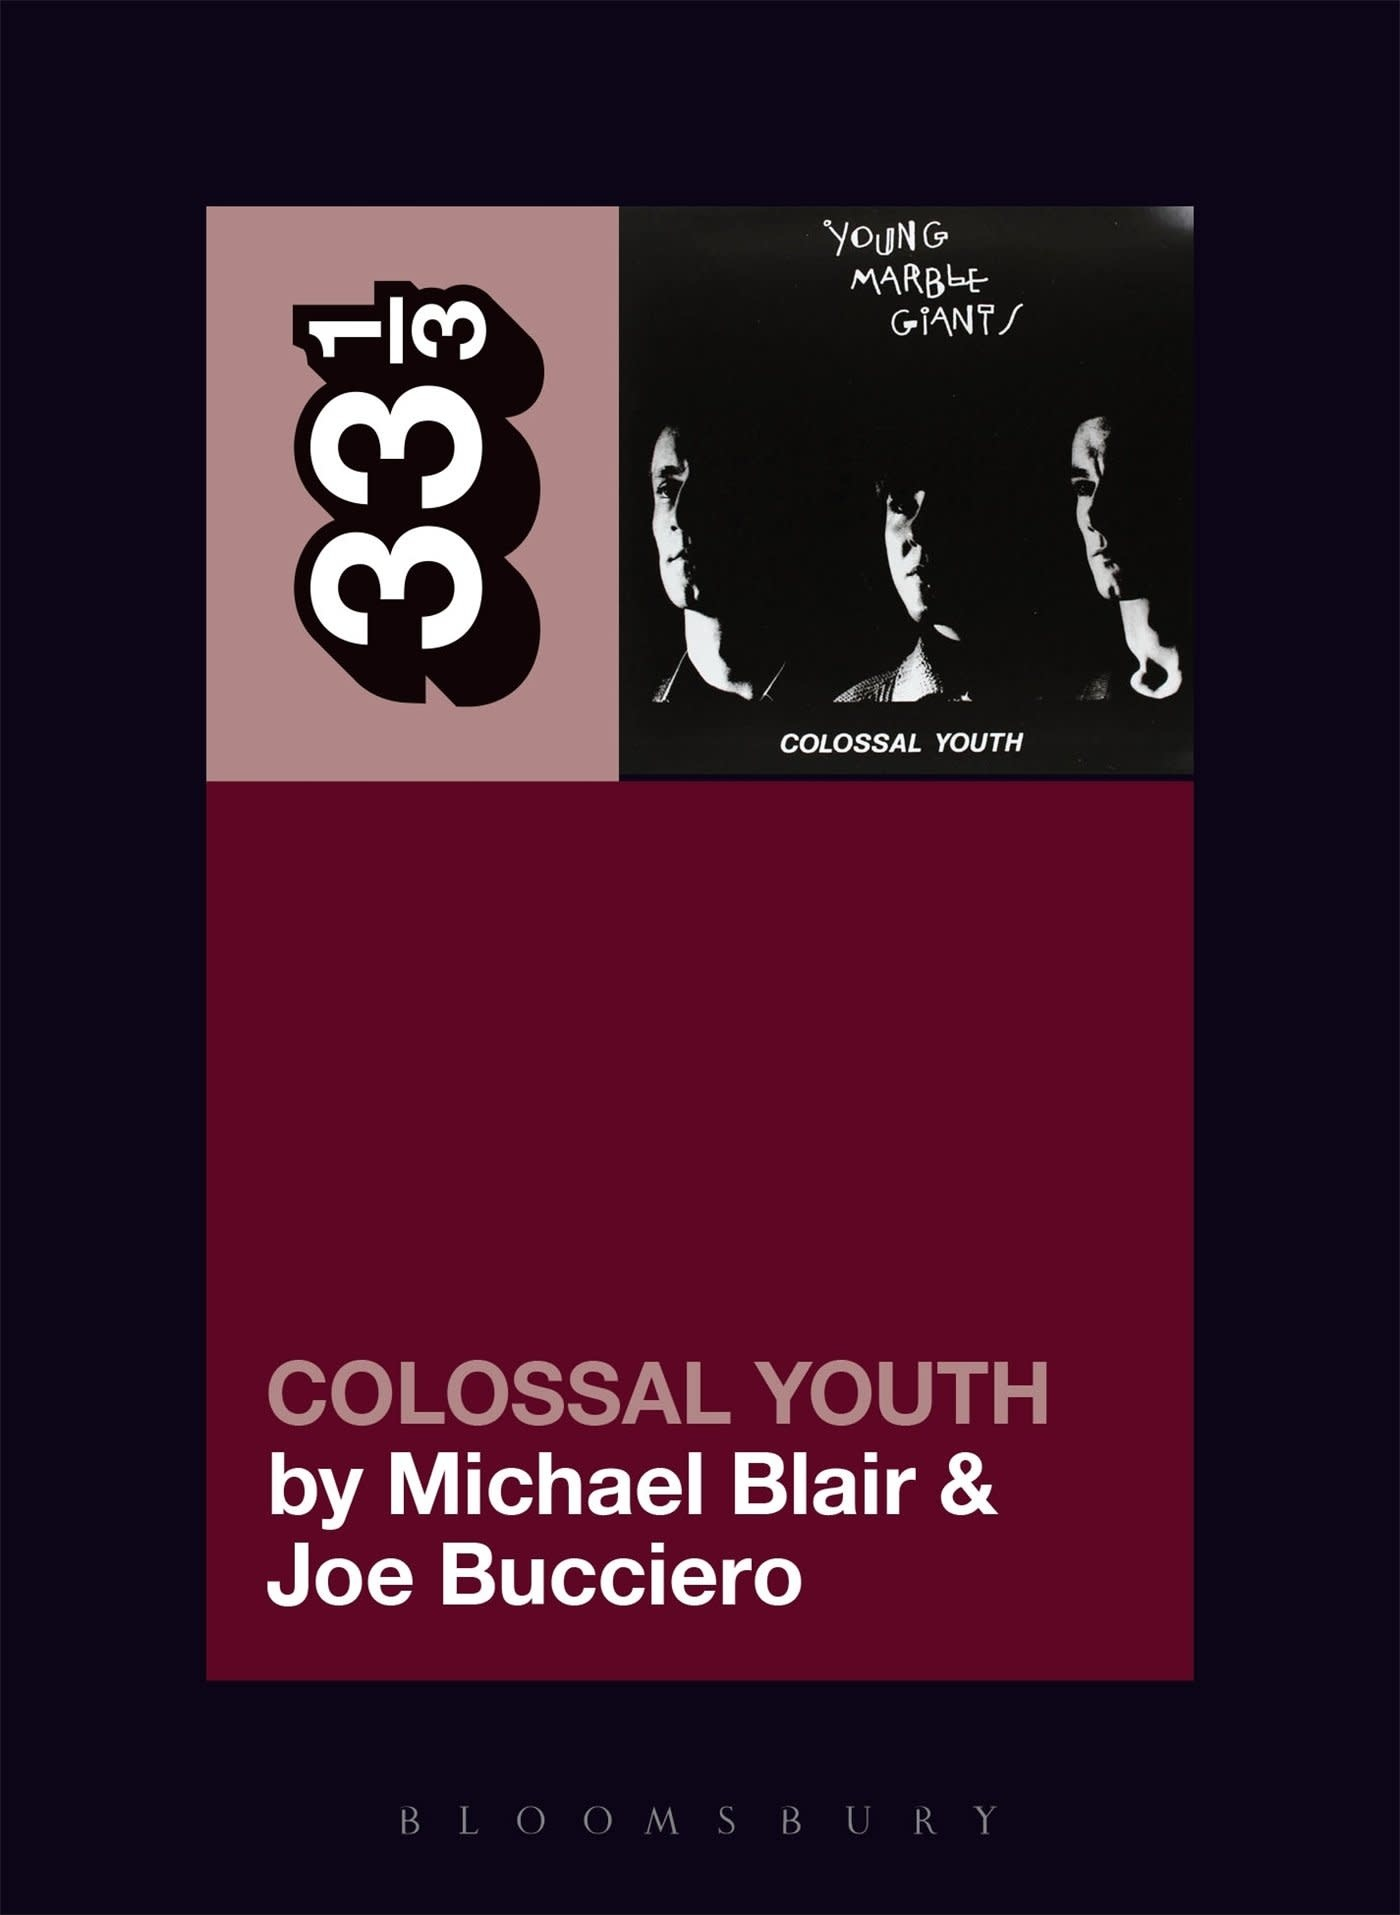 33 1/3 Series 33 1/3 - #121 - Young Marble Giants' Colossal Youth - Michael Blair and Joe Bucciero